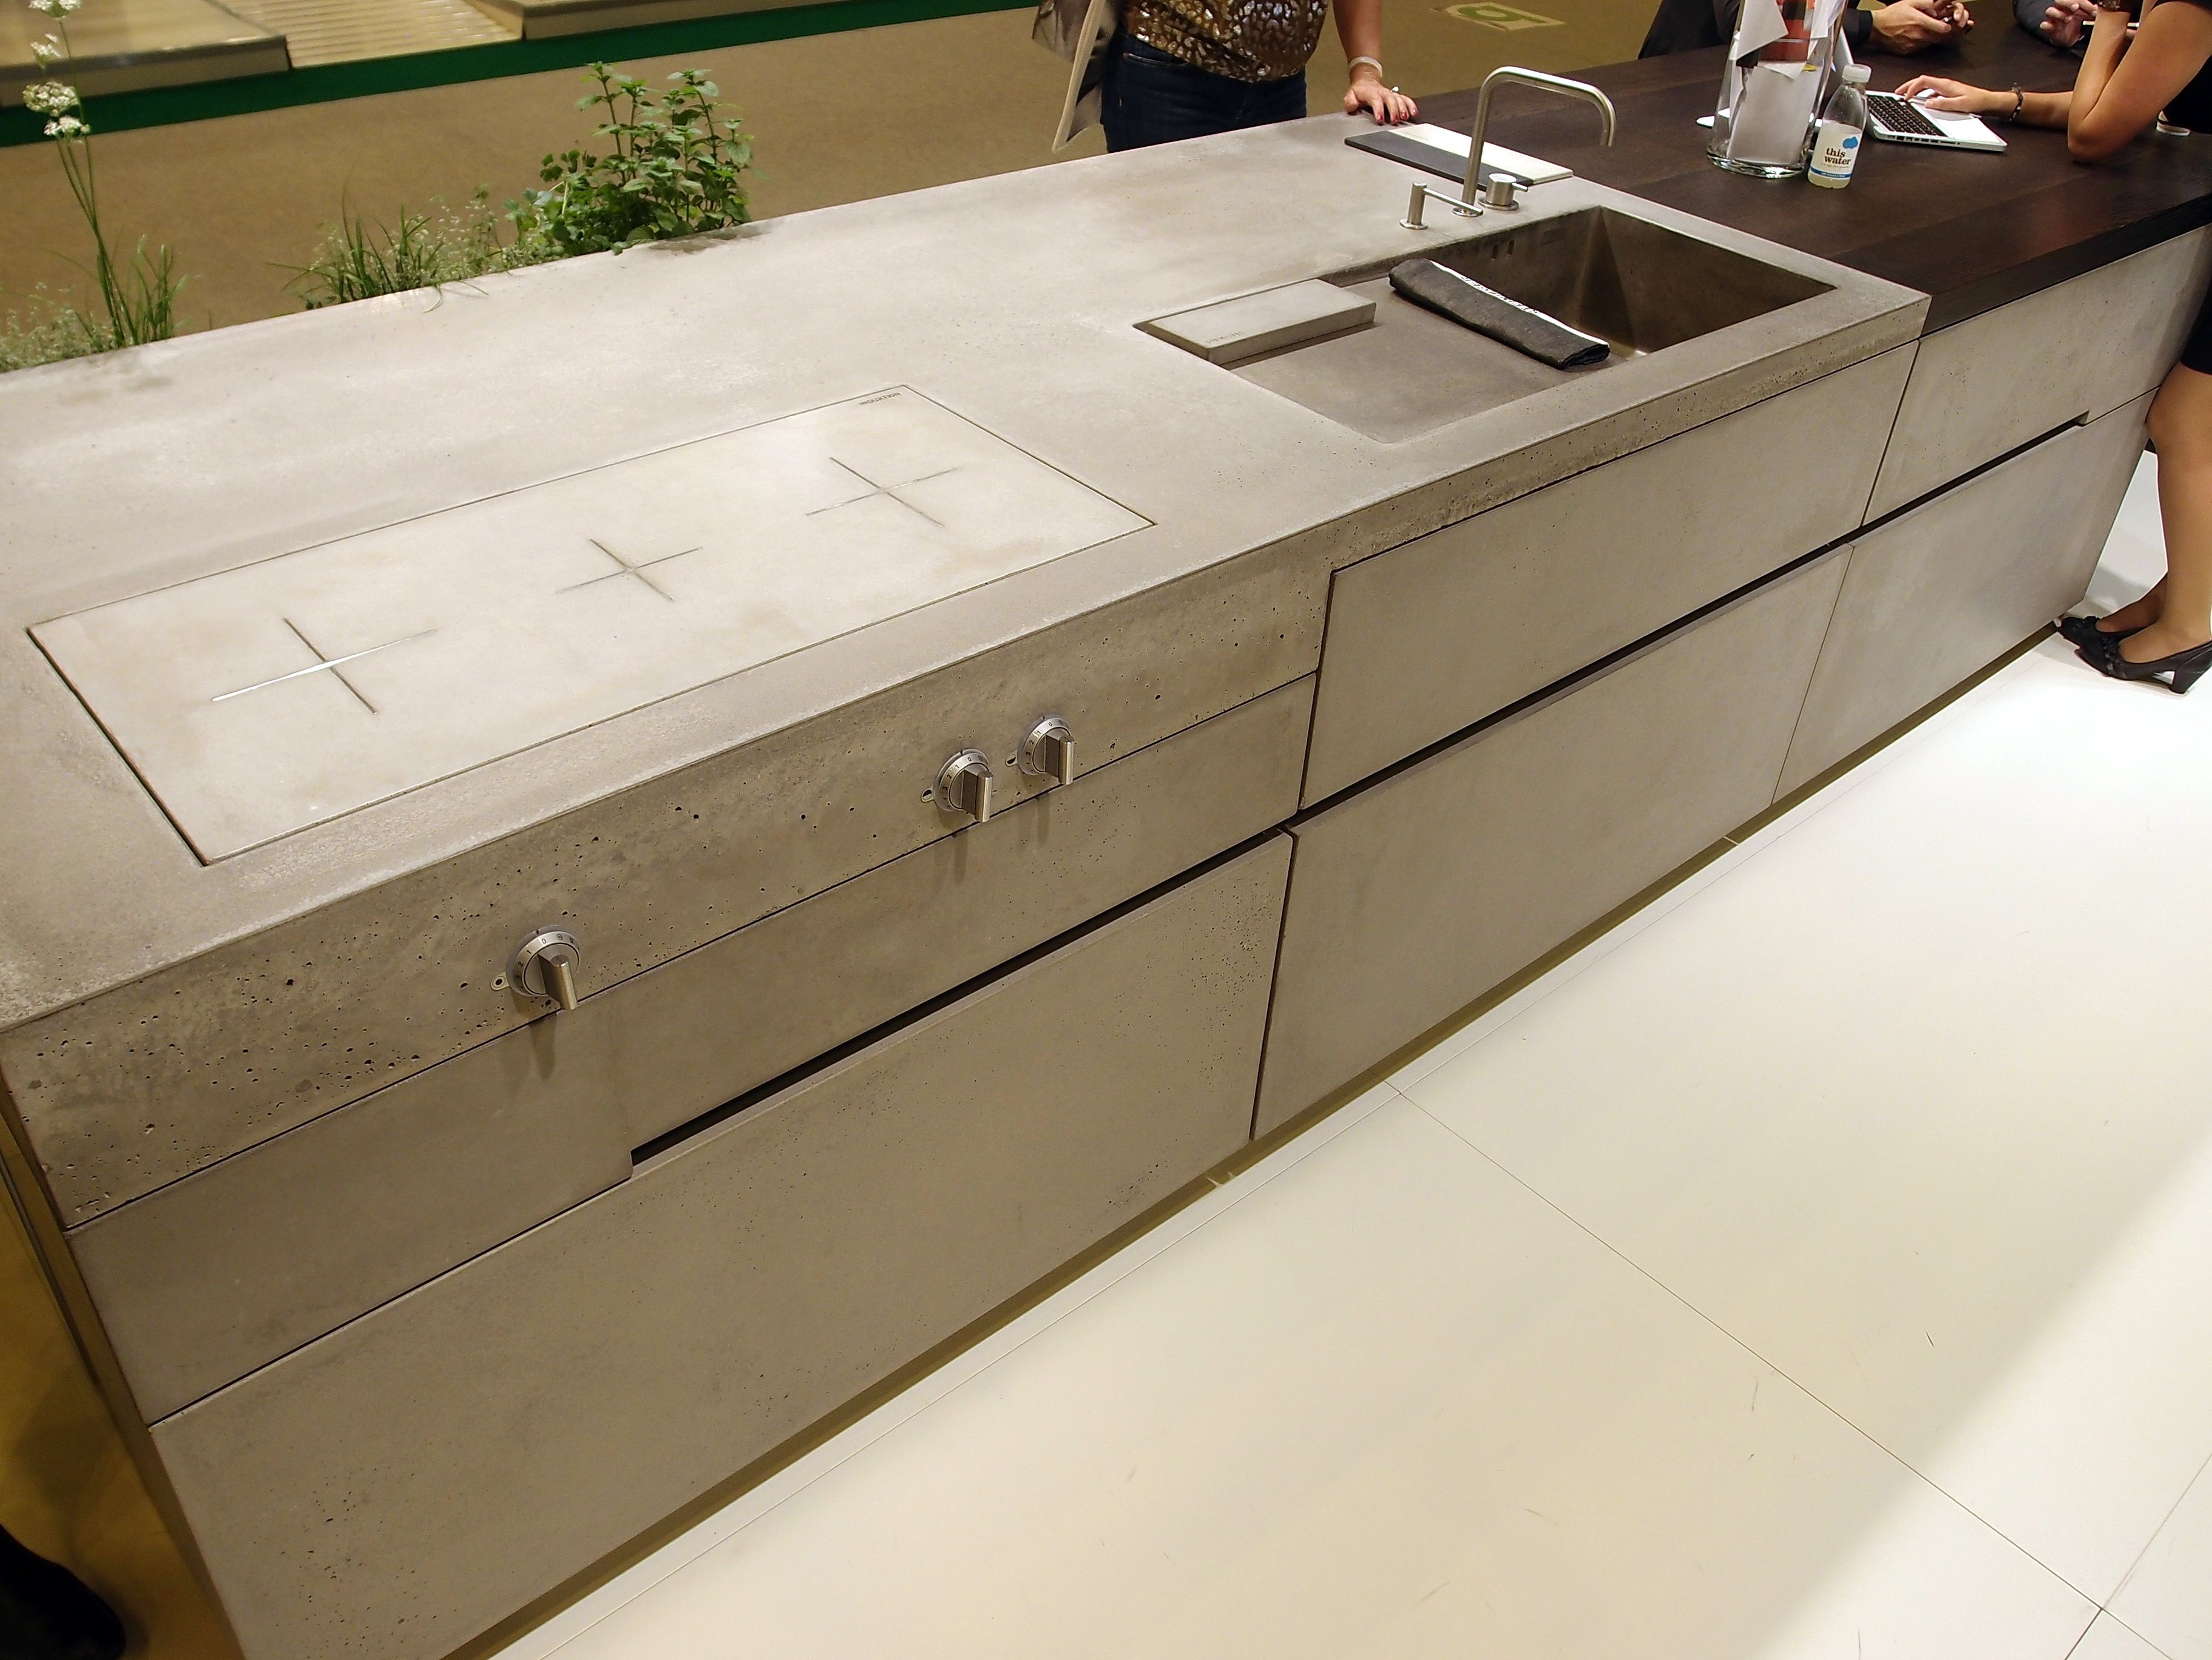 Cool Concrete Kitchen By Steininger With Induction Cooktop With